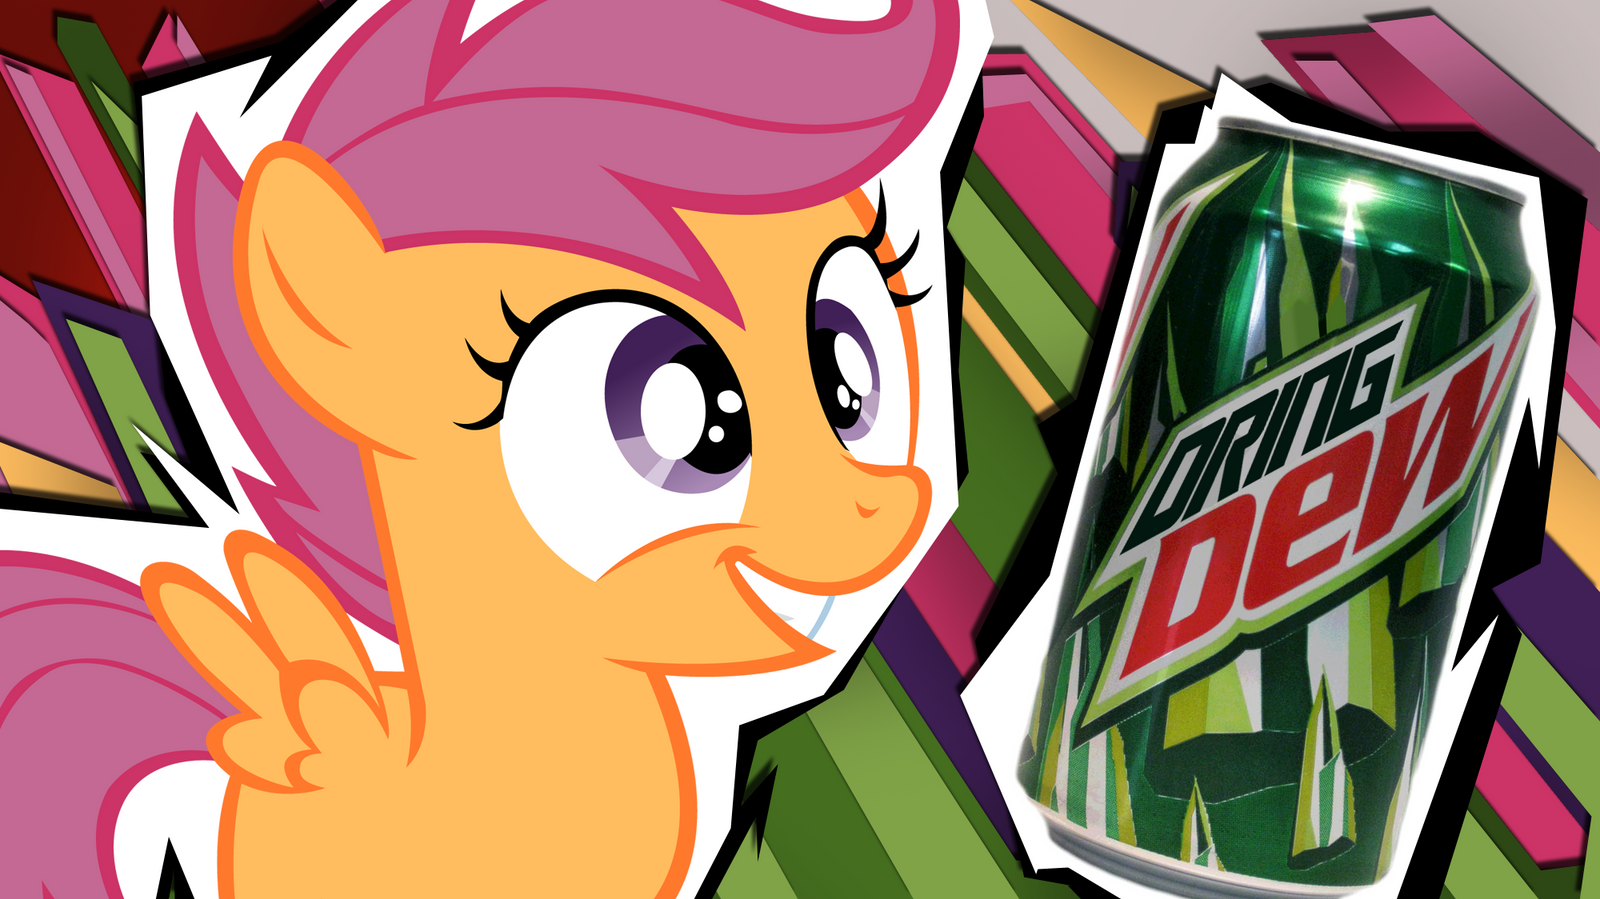 What Do Ponies Drink? - Scootaloo by 4Suit